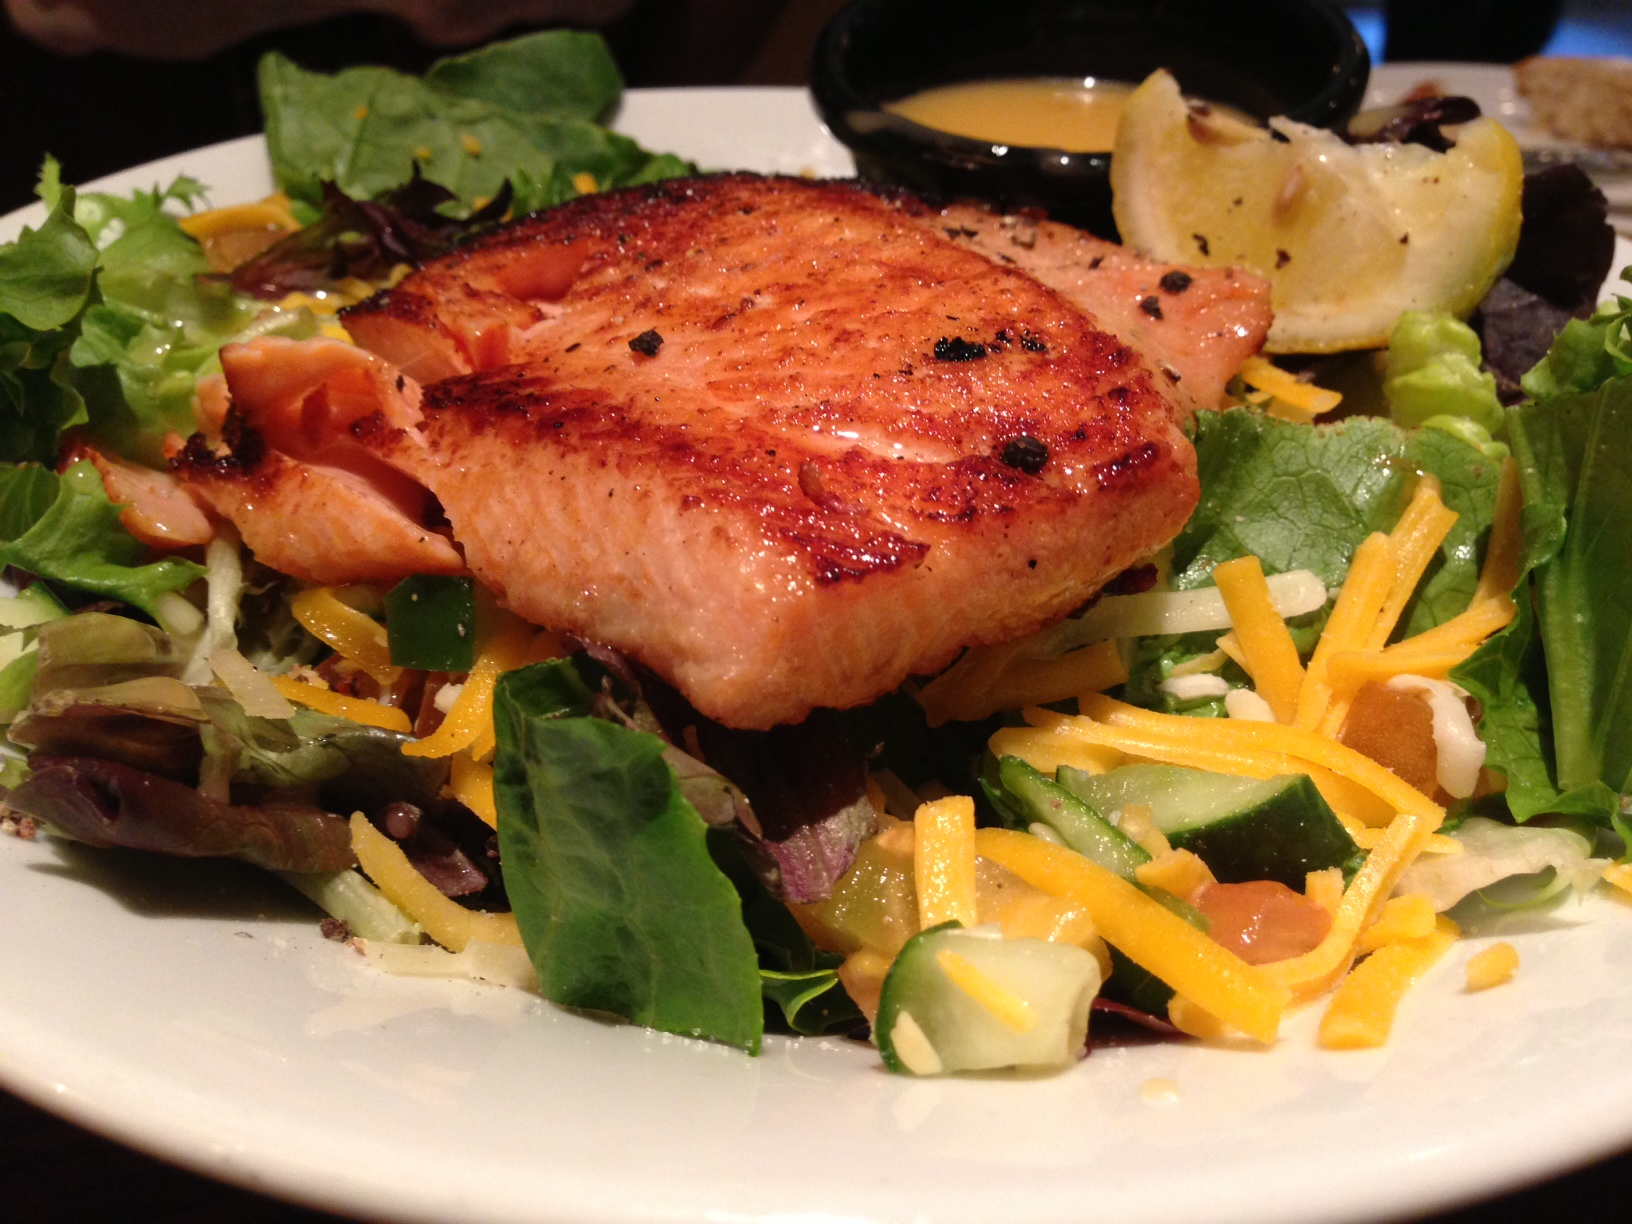 Grilled salmon over a bed of salad